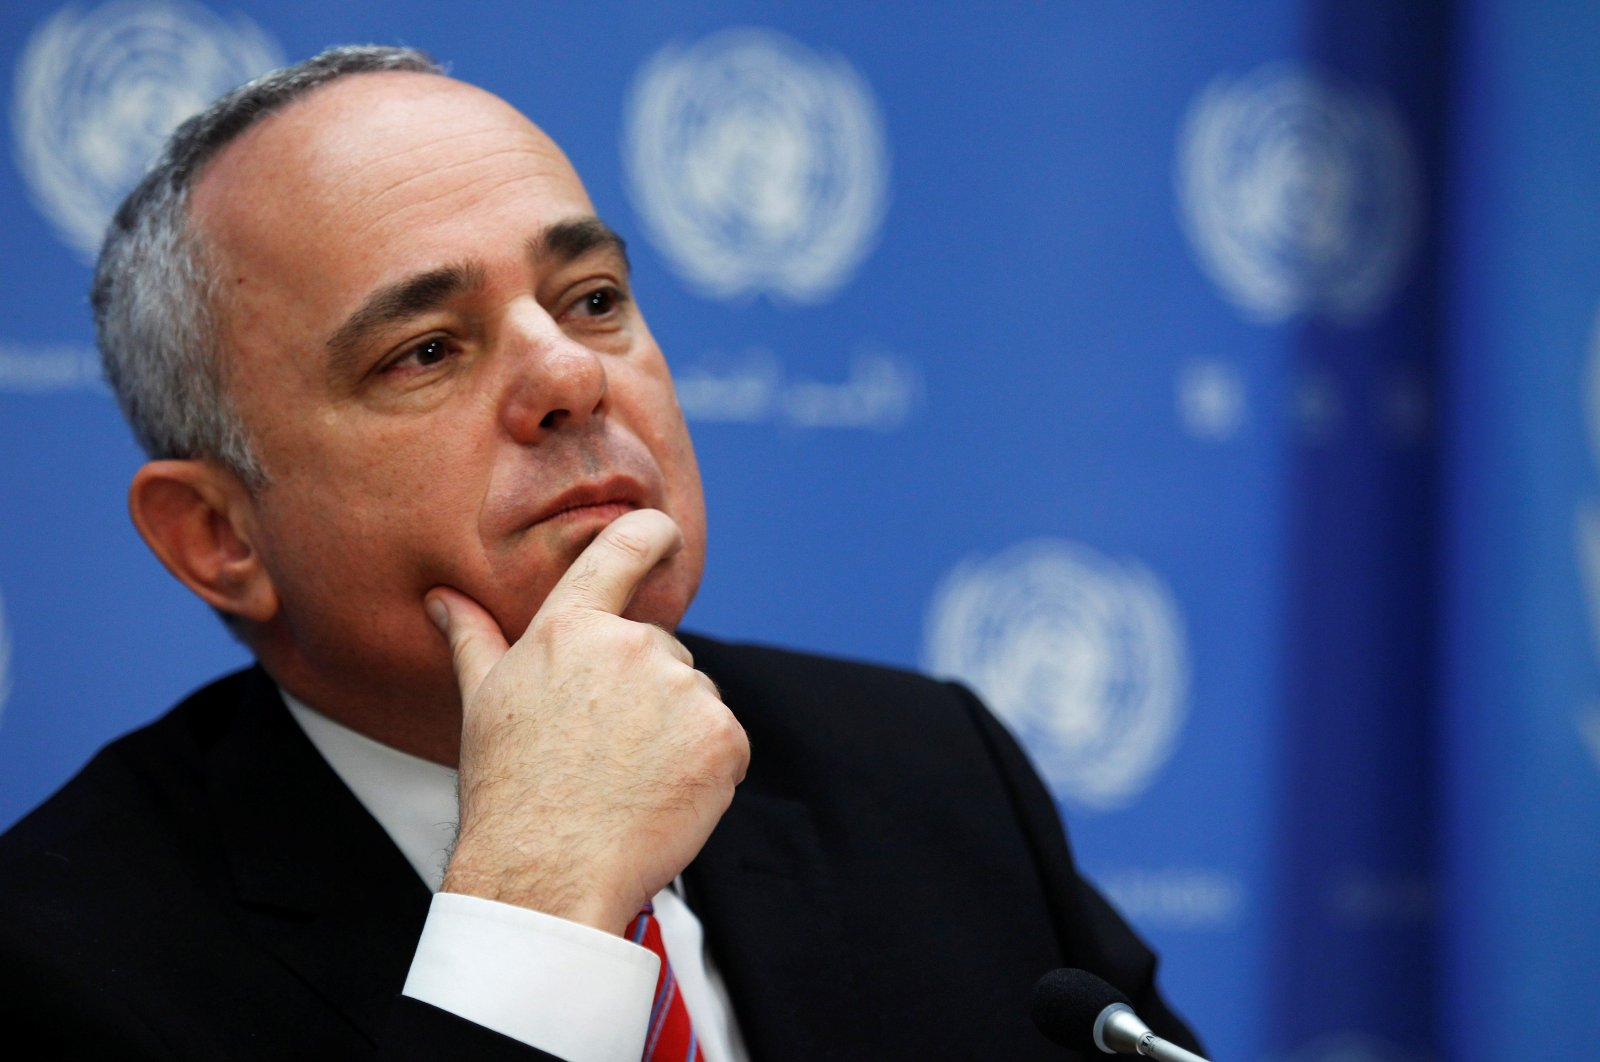 Israeli Energy Minister Yuval Steinitz attends a news conference in New York, U.S., Sept. 25, 2013. (Reuters Photo)